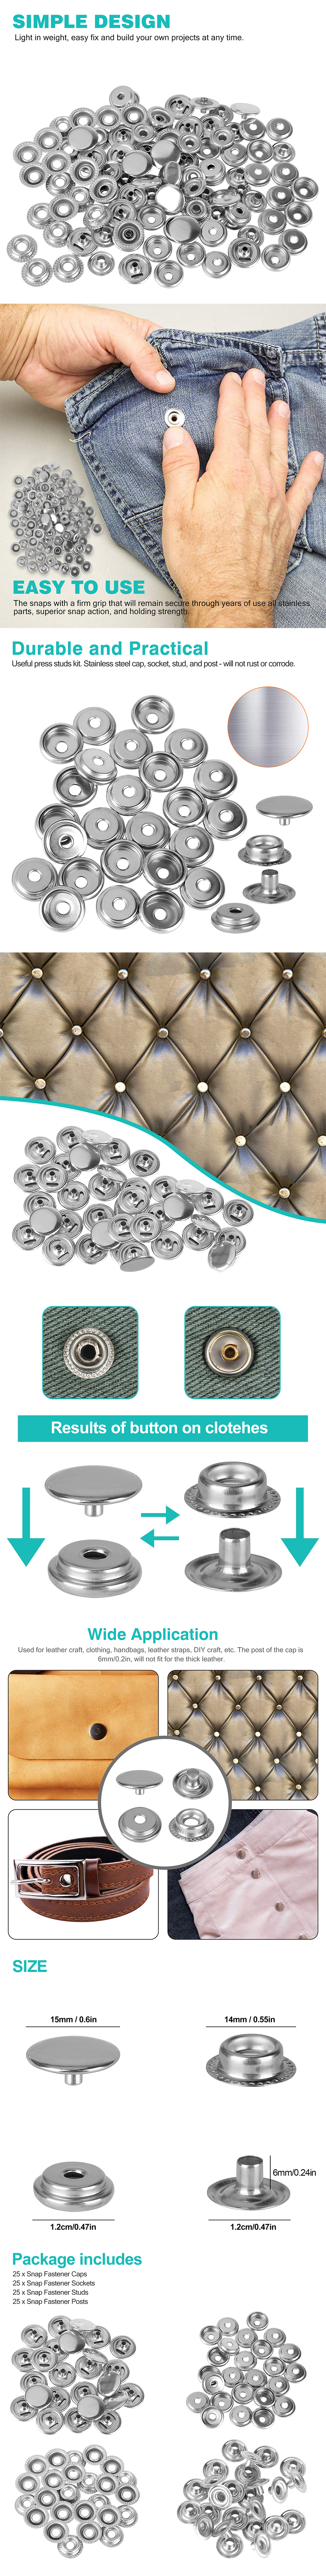 100PCS Stainless Steel Snap Fastener Kit for Boat Canvas Screw Press Stud Cover